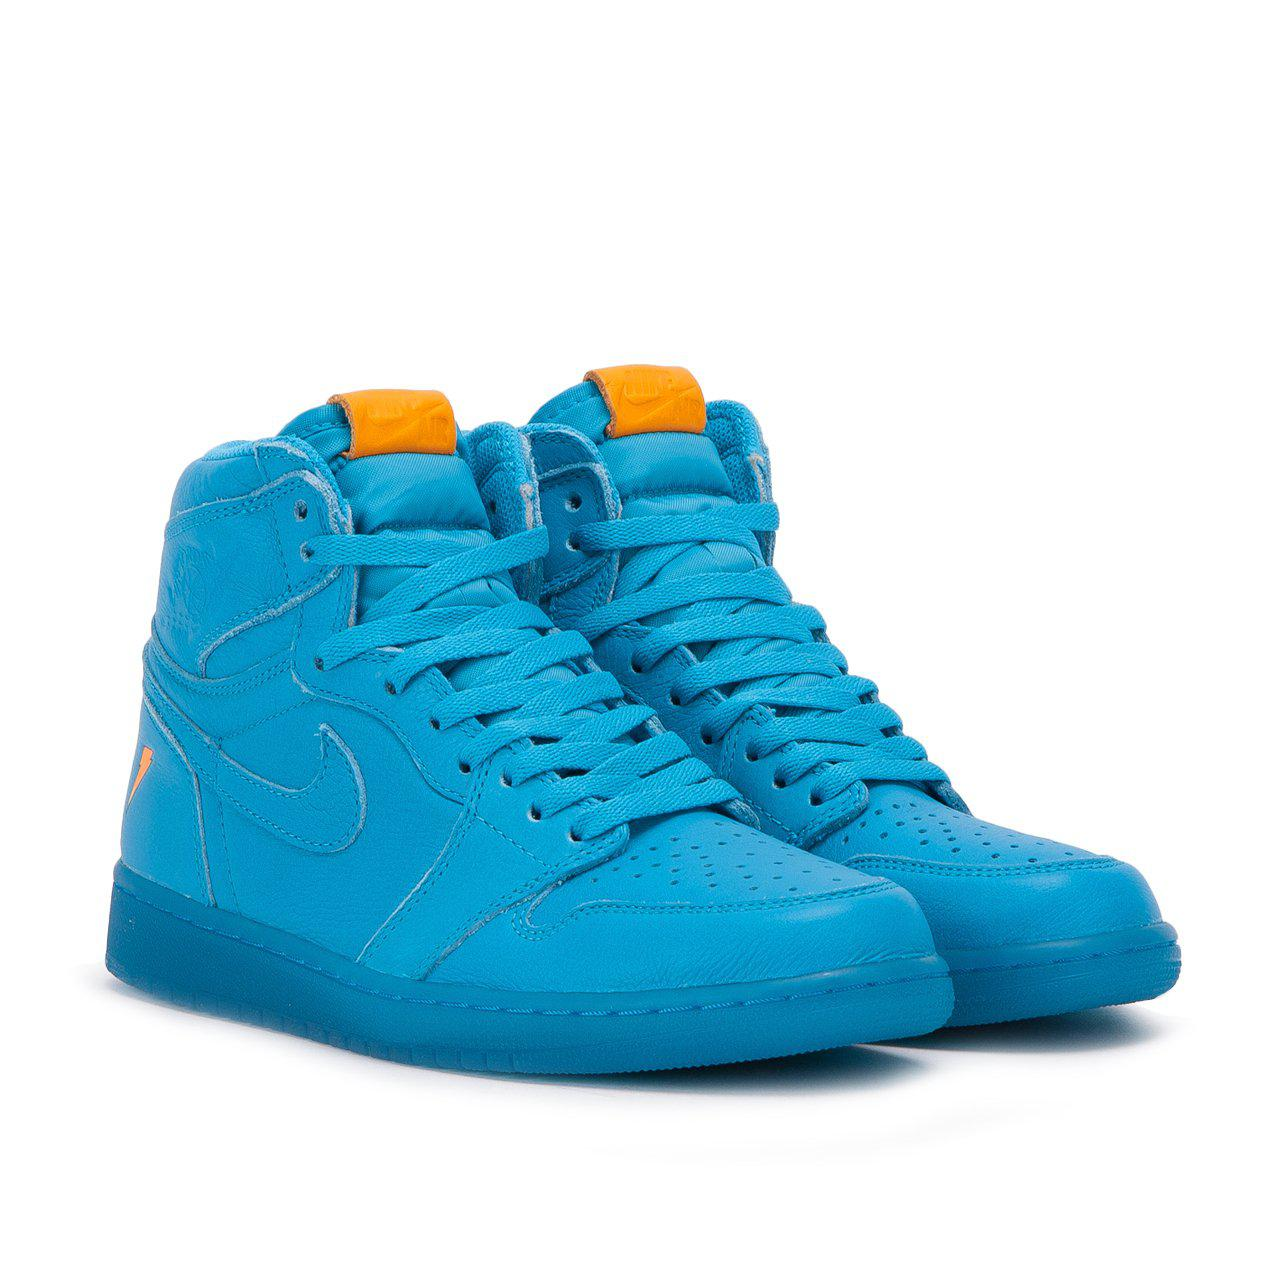 a8dbade0b Lyst - Nike Air Jordan 1 Retro High Og Gatorade Edition in Blue for Men